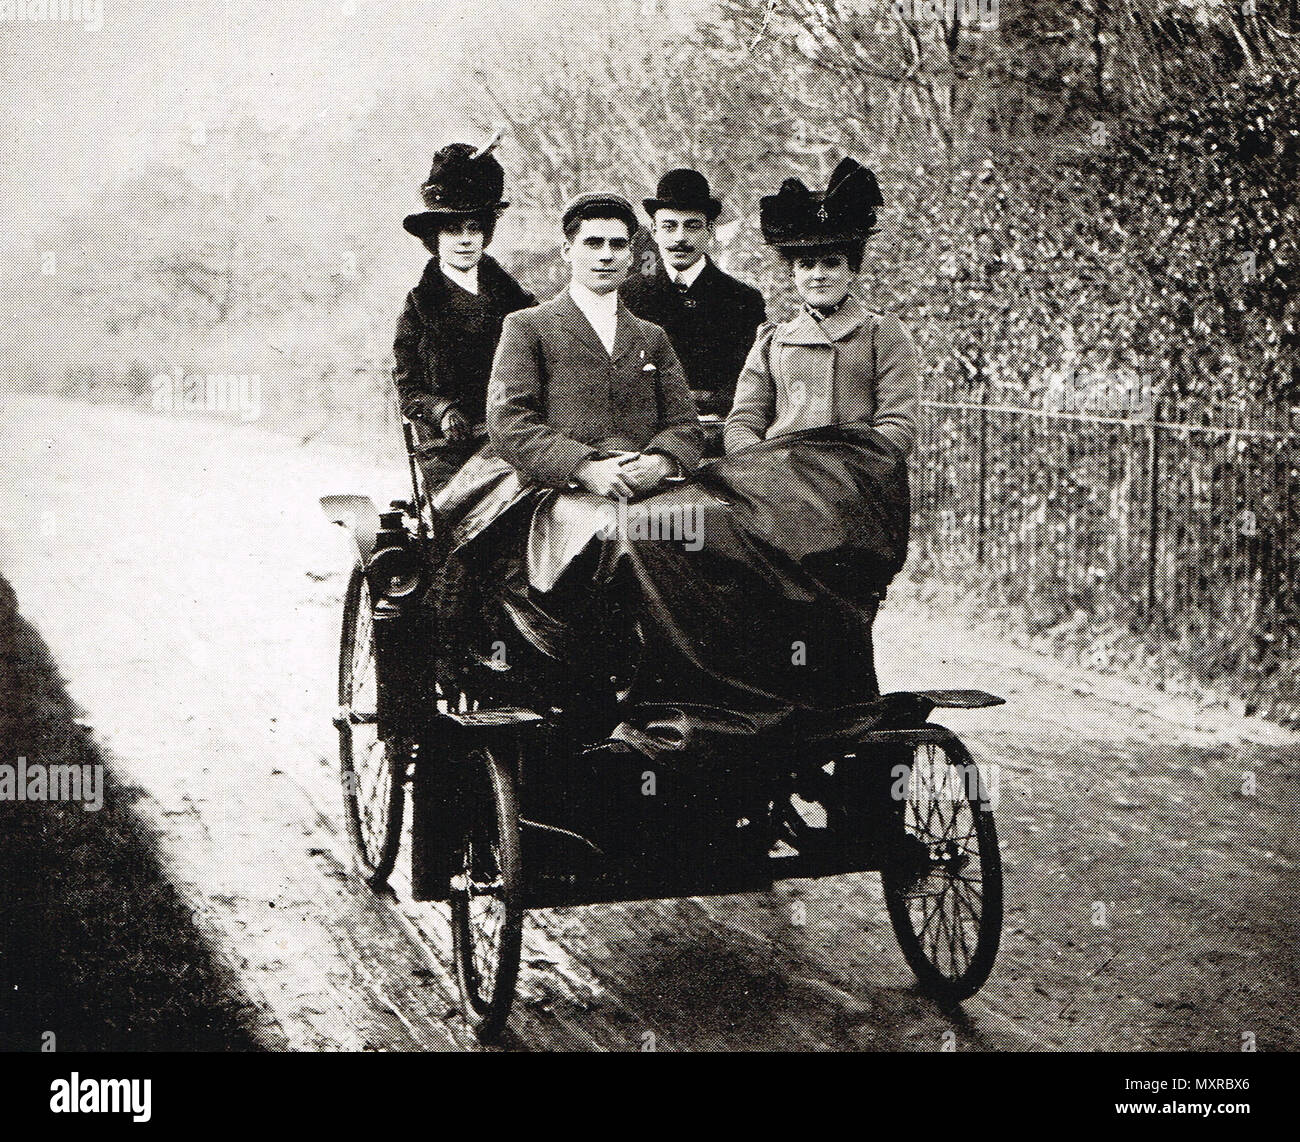 Pioneers of early motoring, circa 1890s - Stock Image